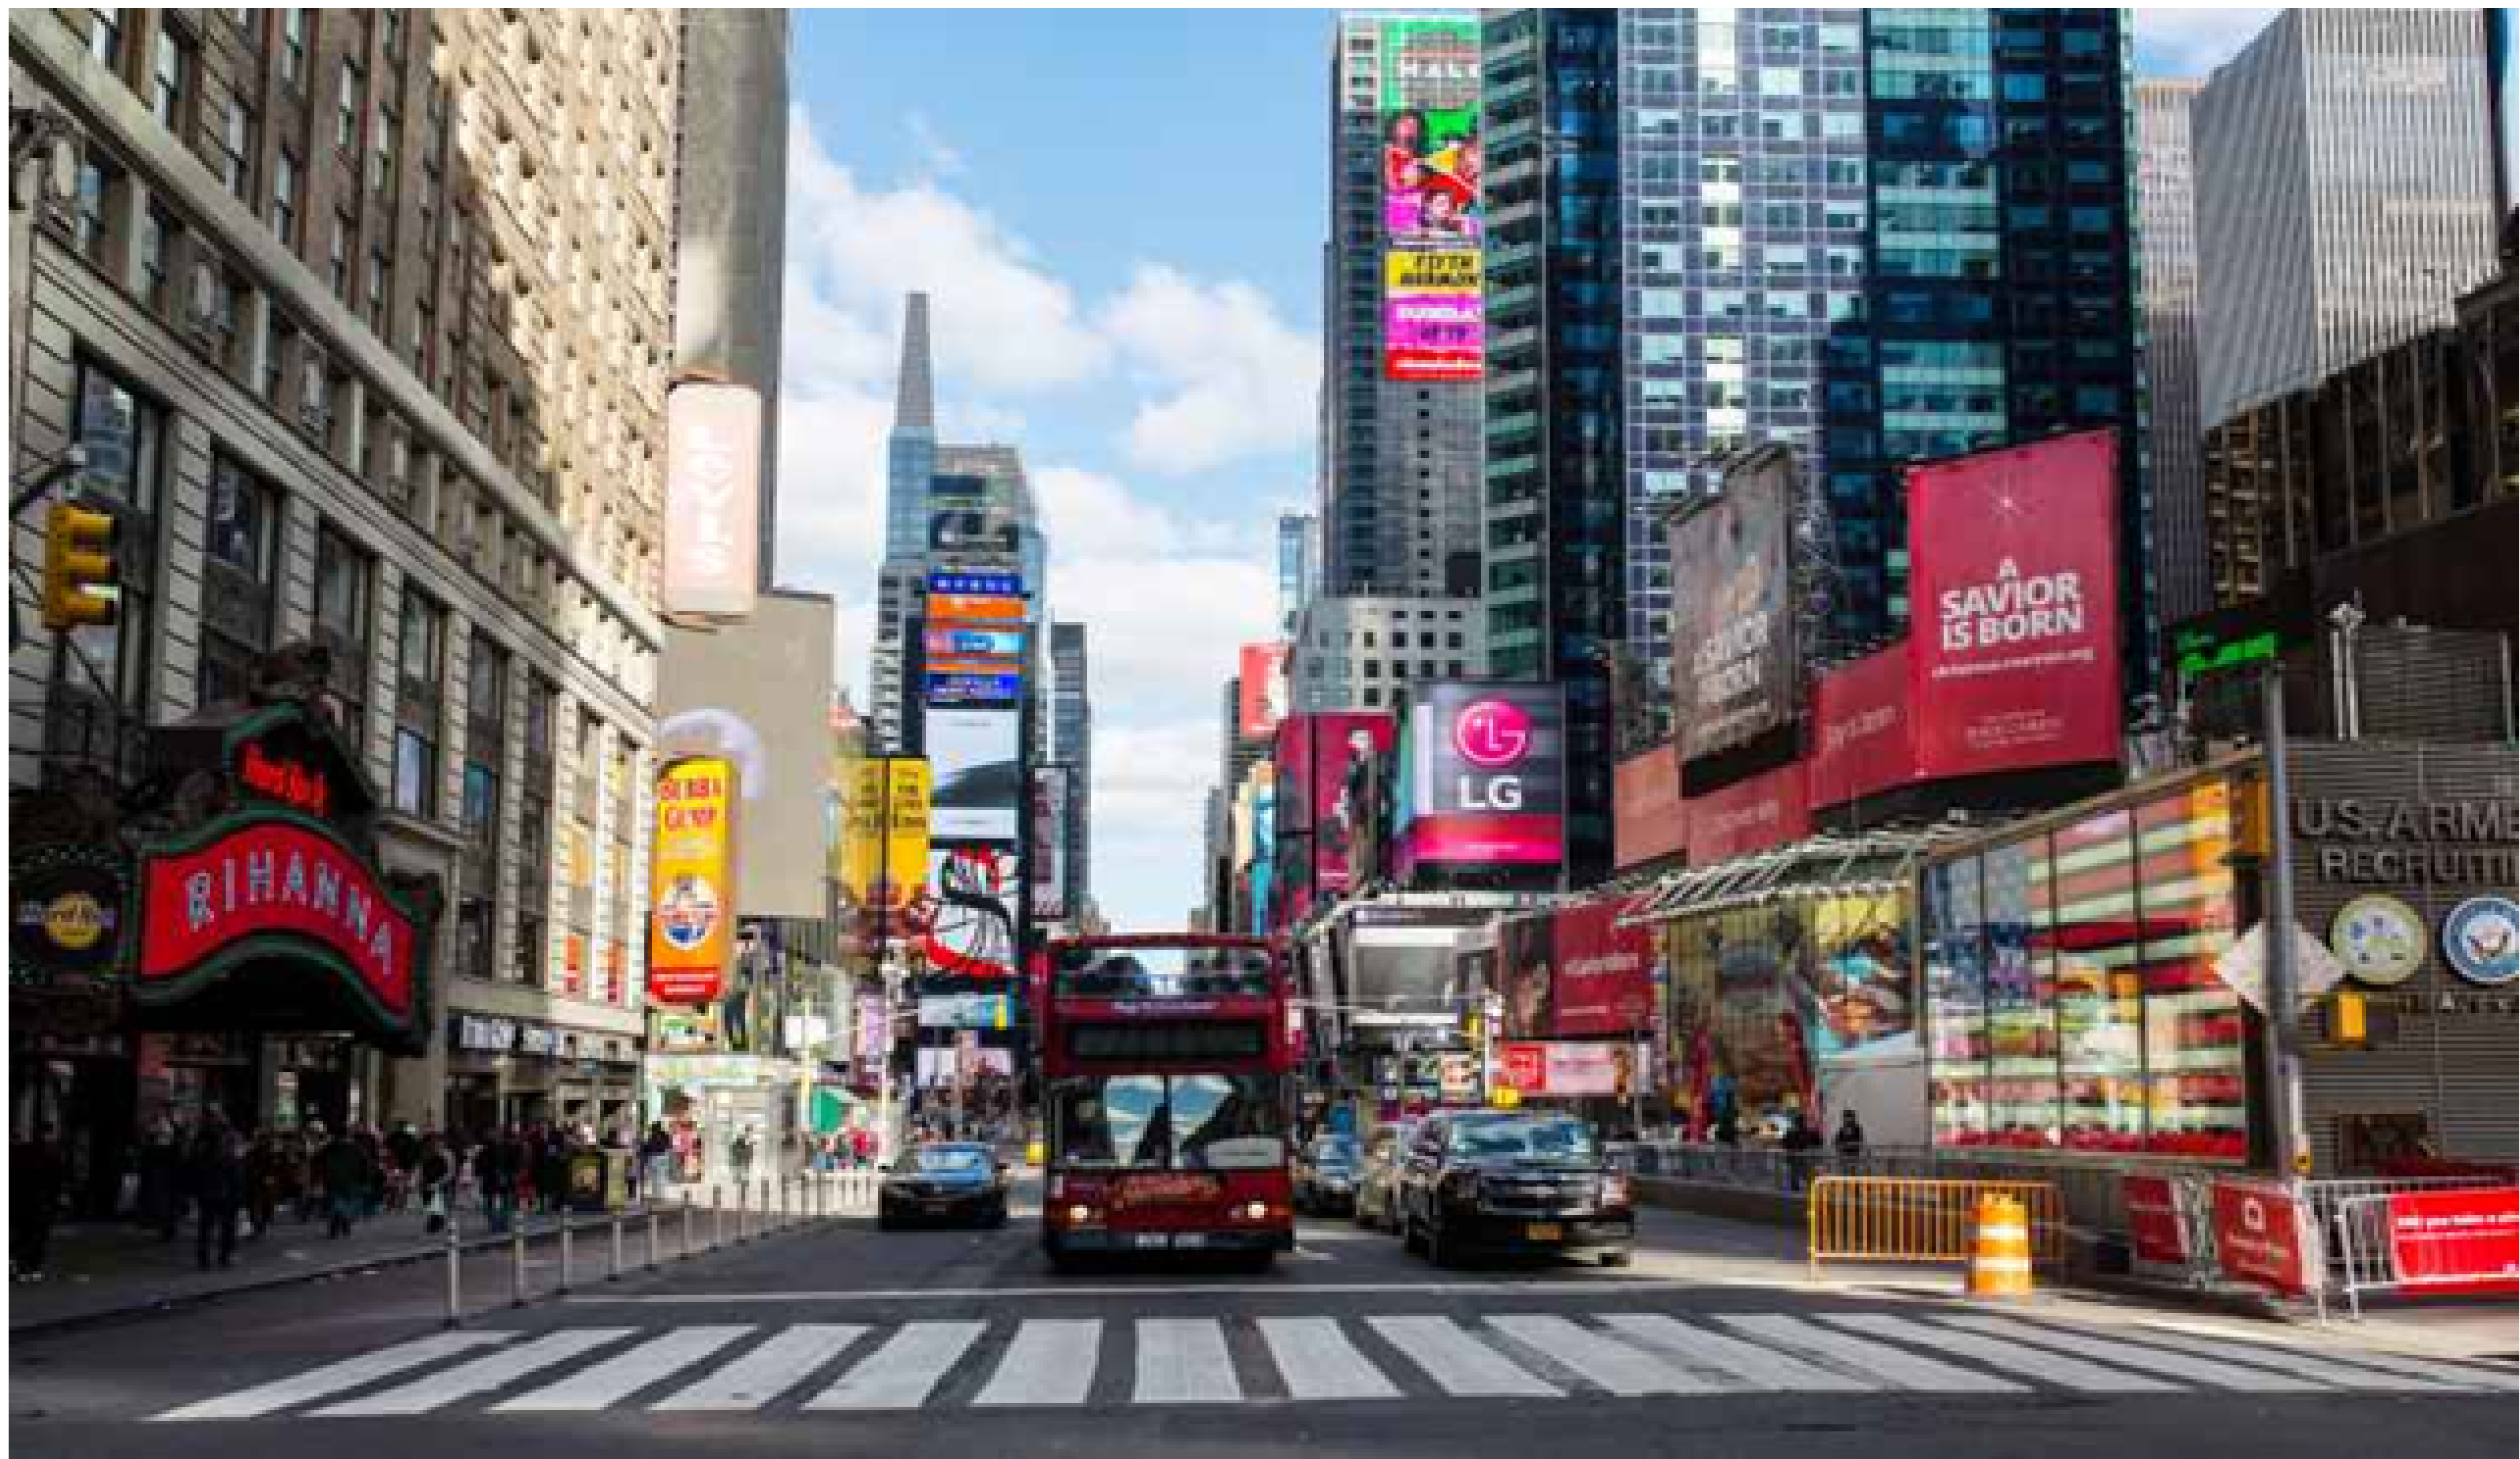 10 Excellent Places to Visit in New York